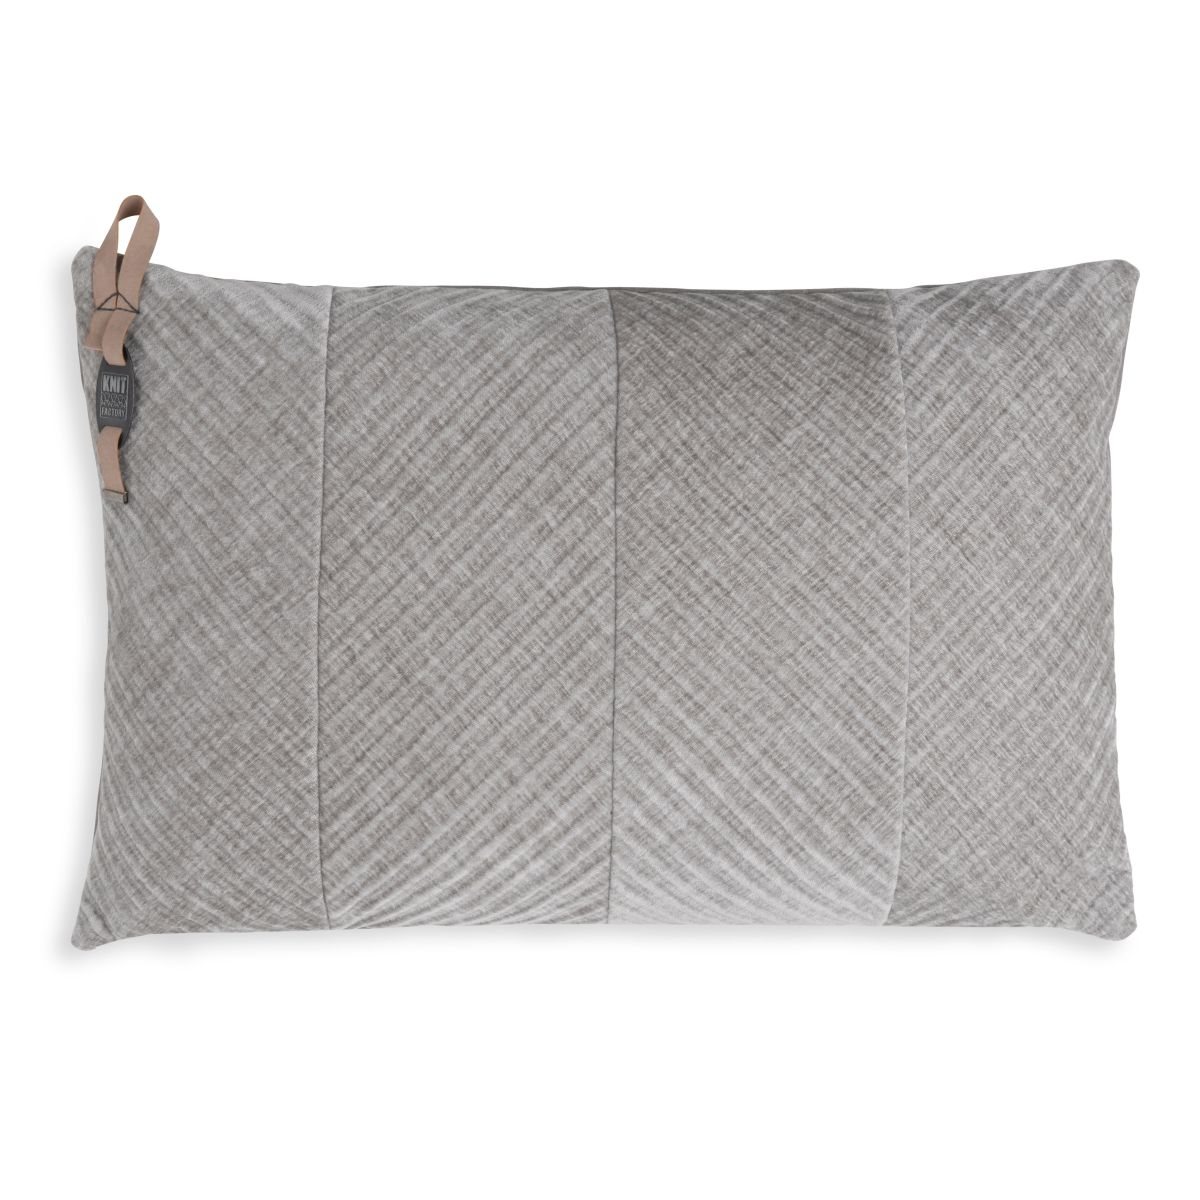 beau cushion light grey 60x40